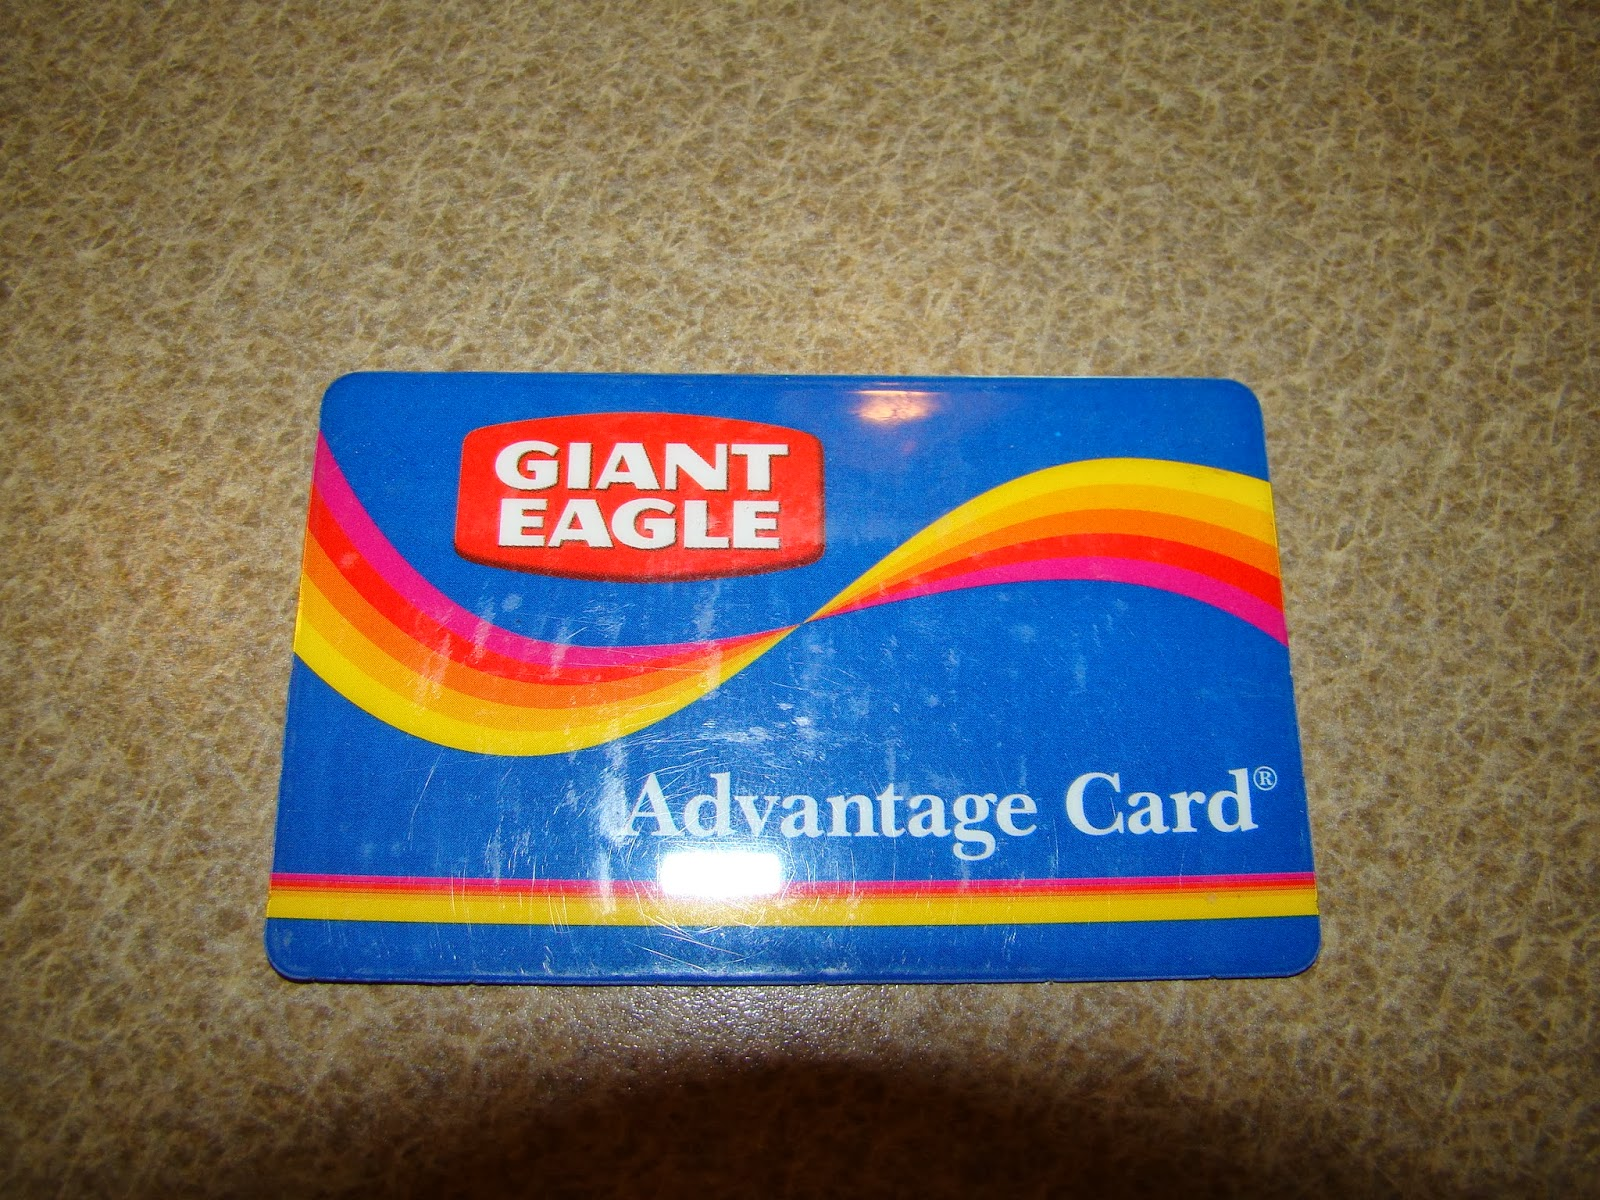 Hhgregg gift cards at giant eagle